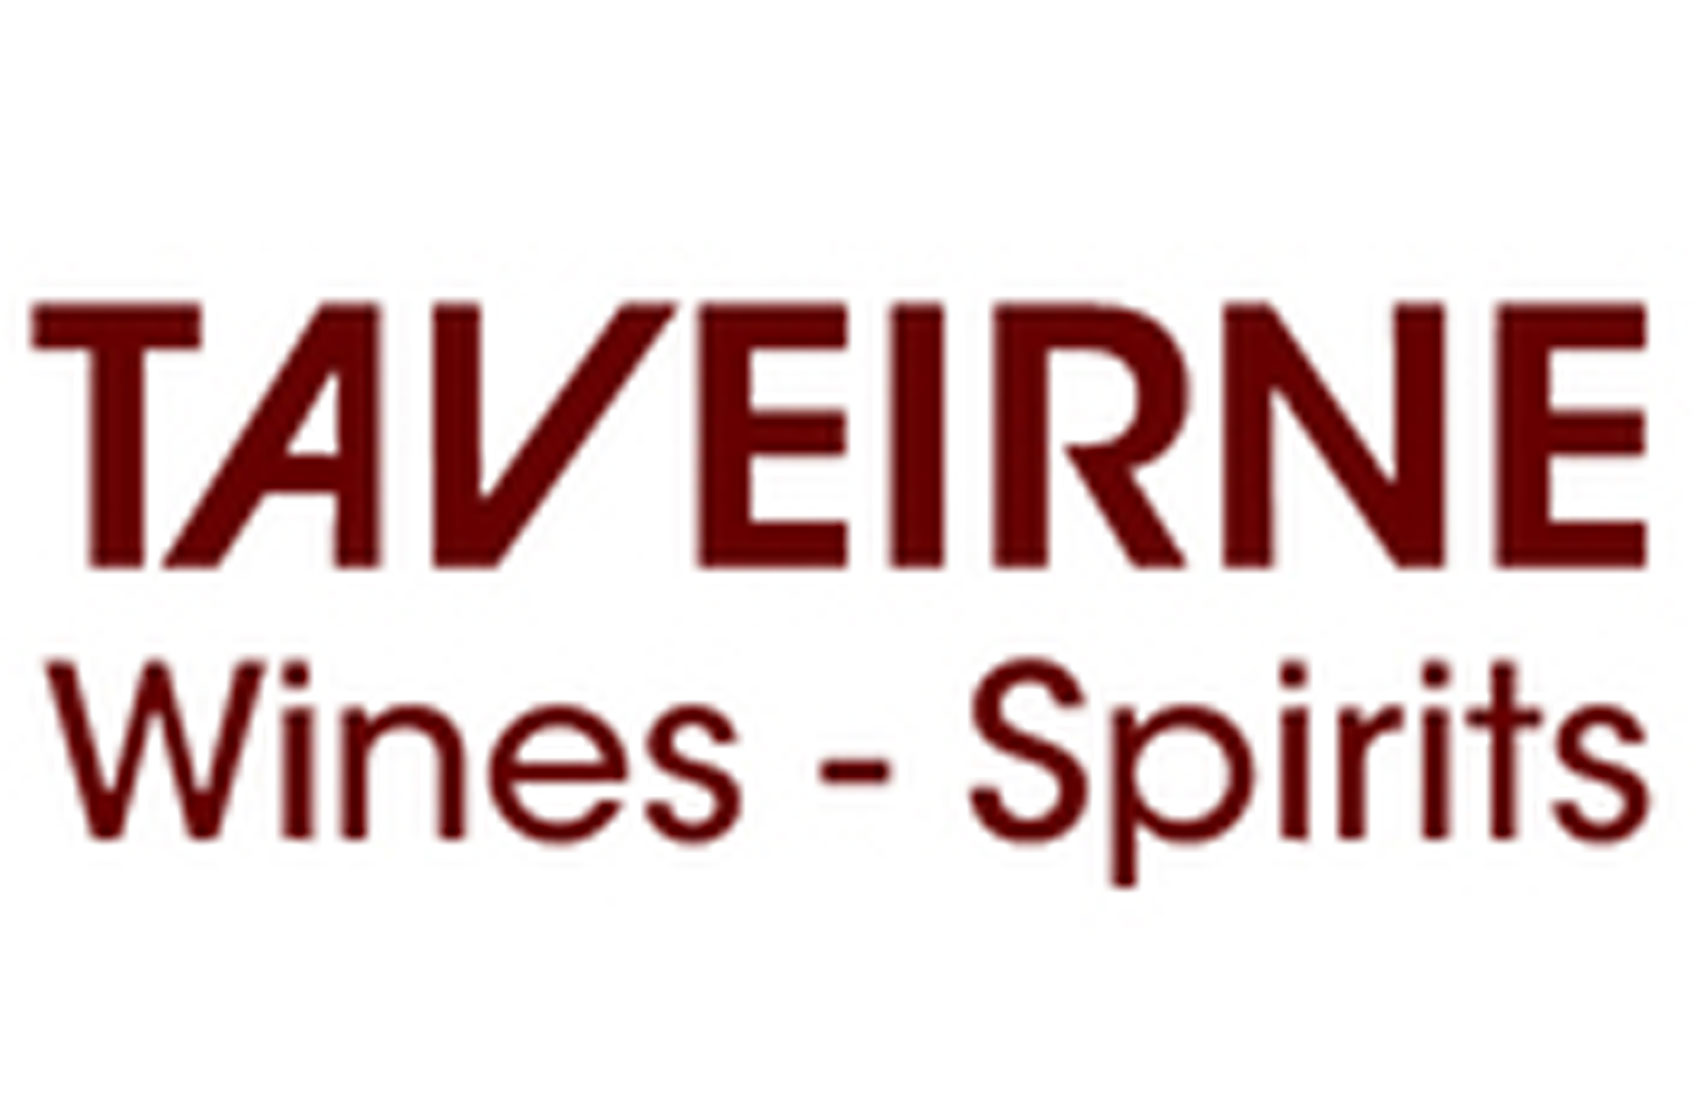 Taveirne Wines-Spirits